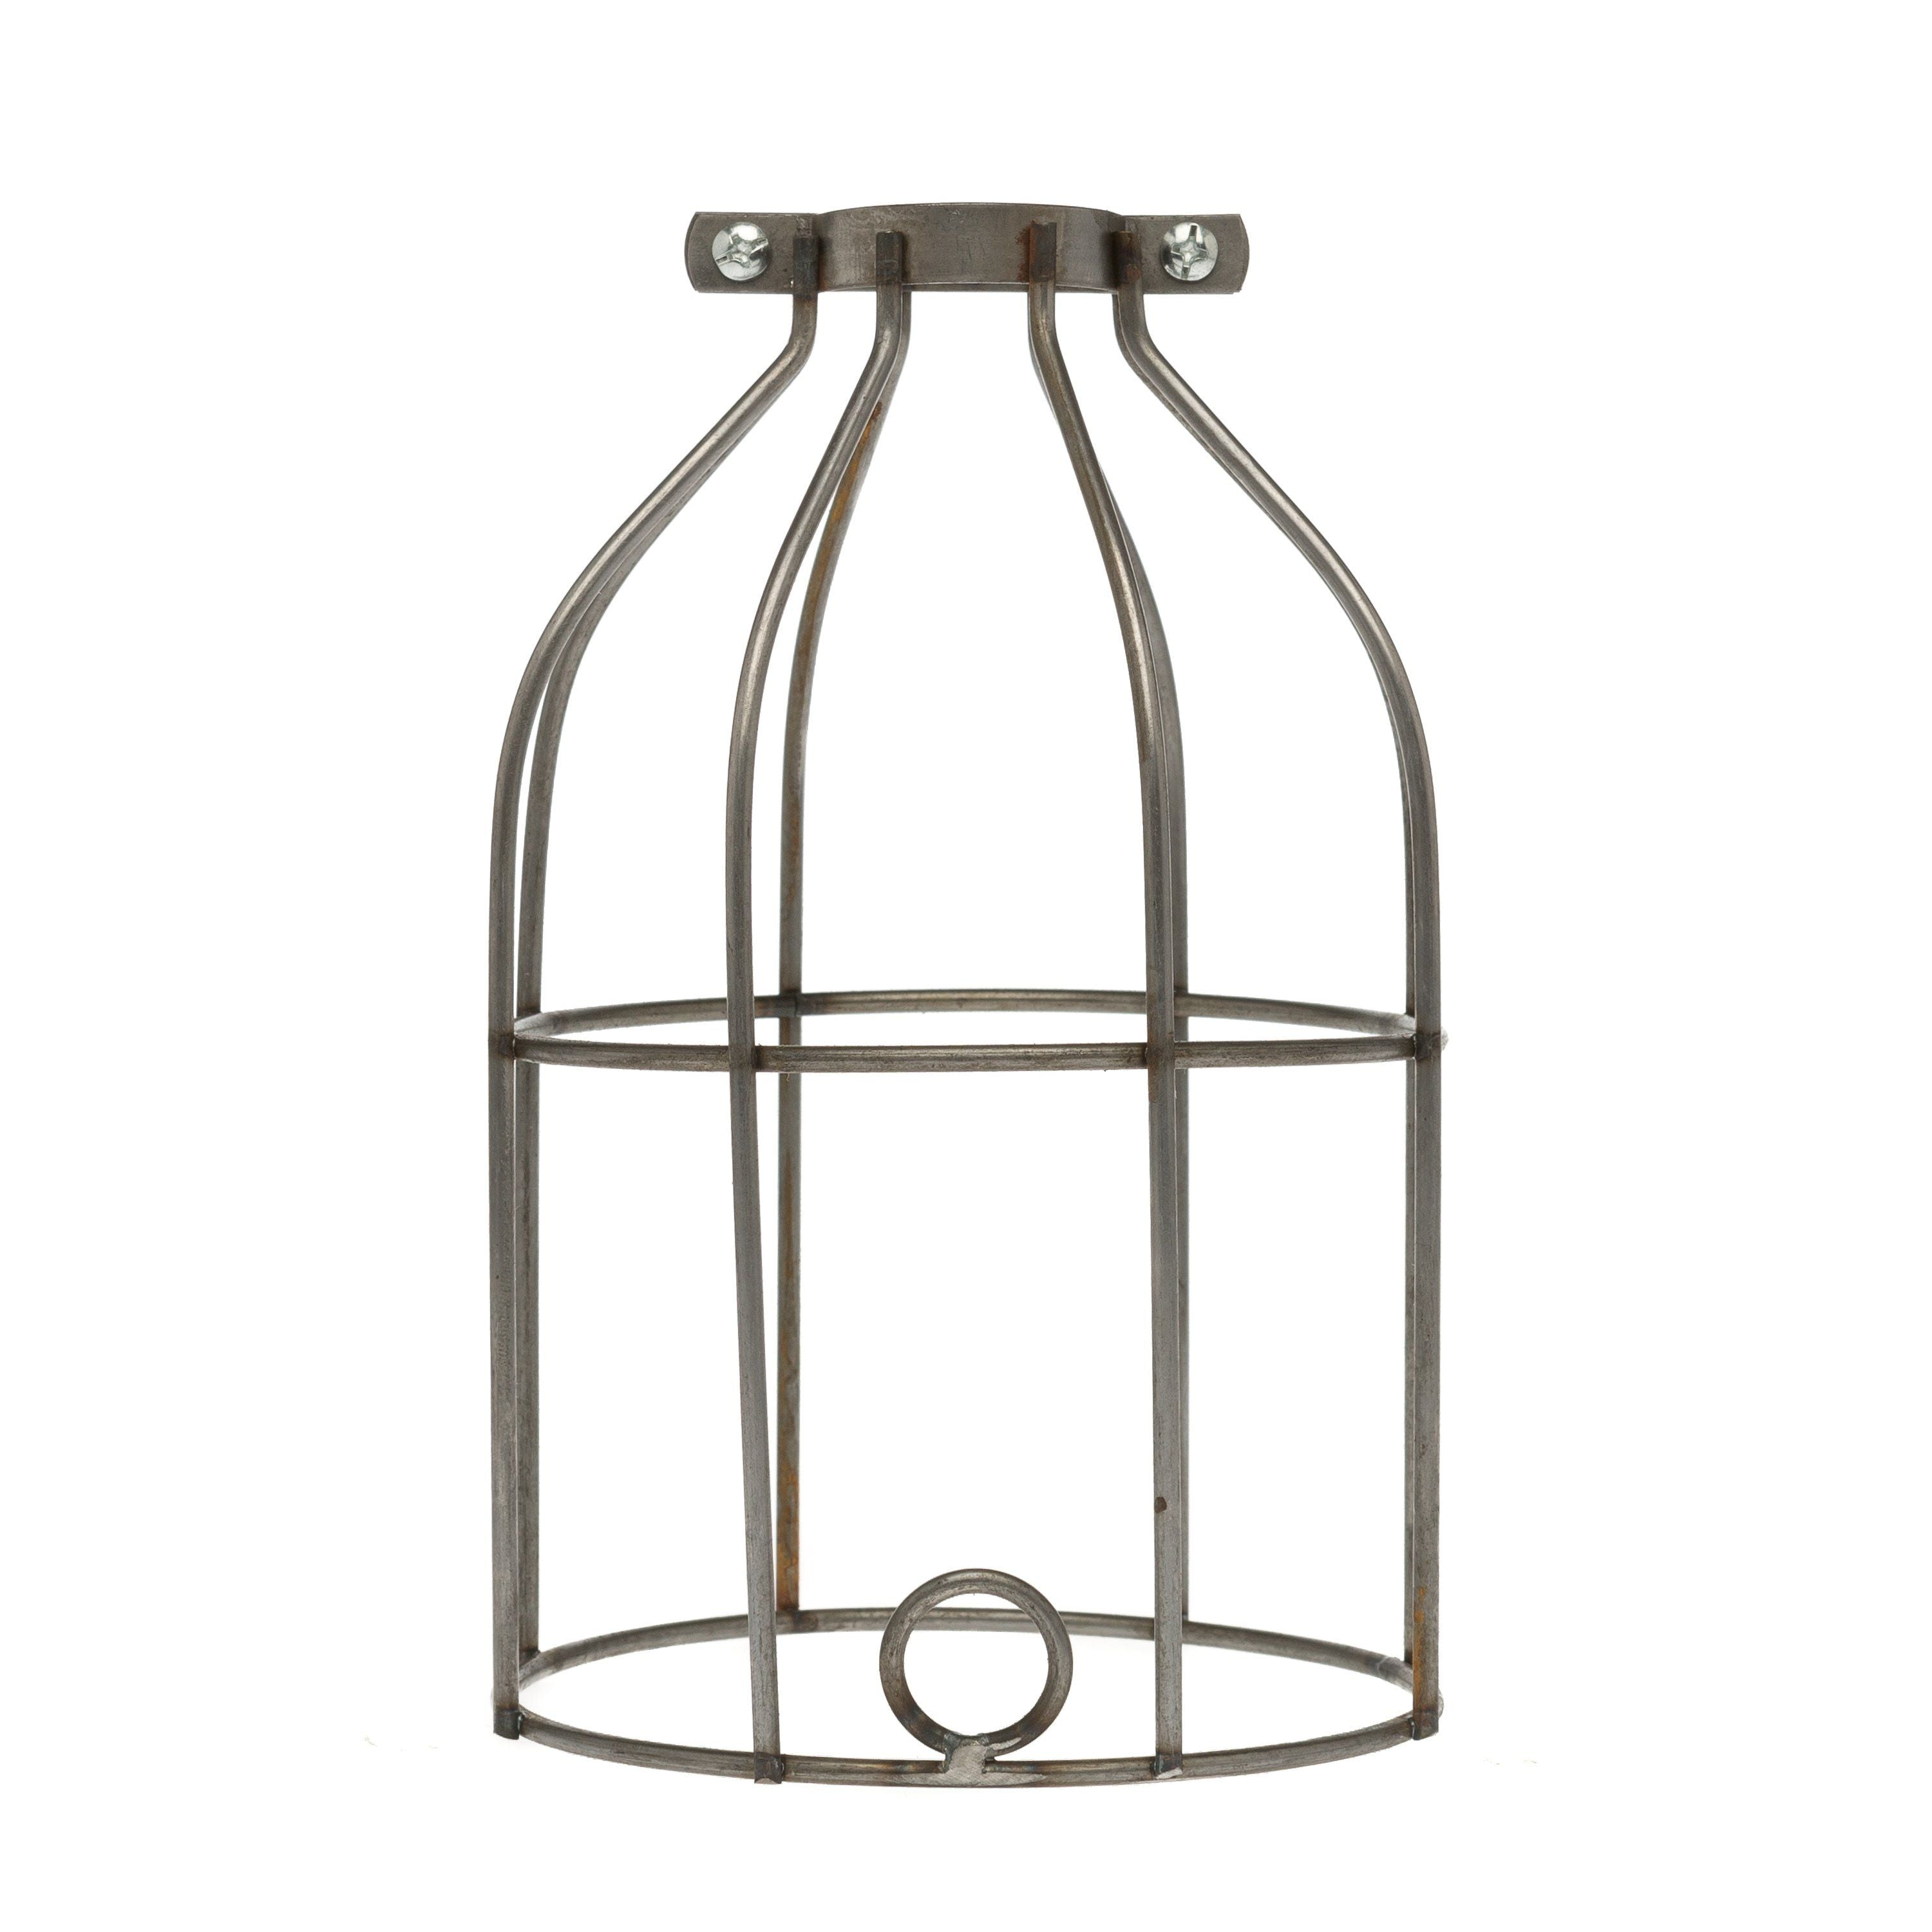 lighting cage. Industrial Light Bulb Cage Lighting -